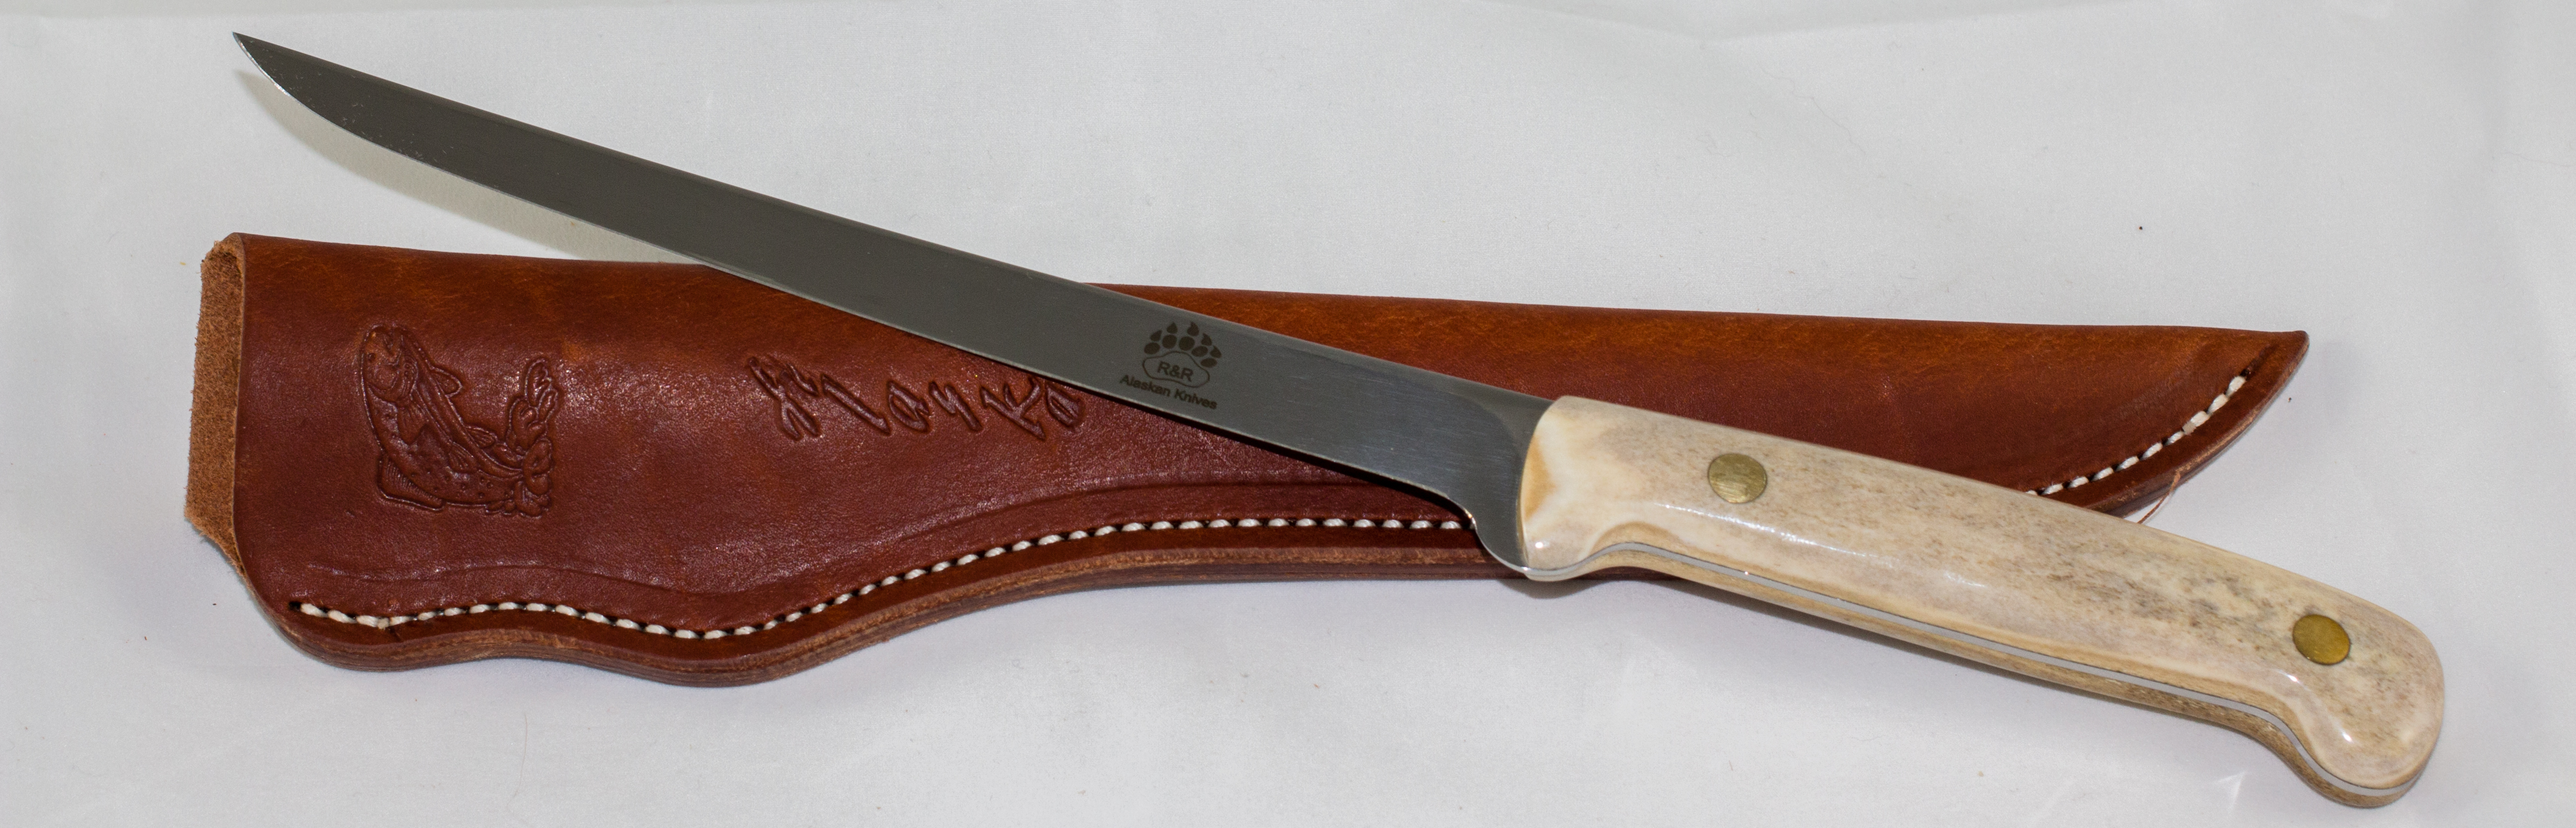 Fillet Knife By Bob Merry